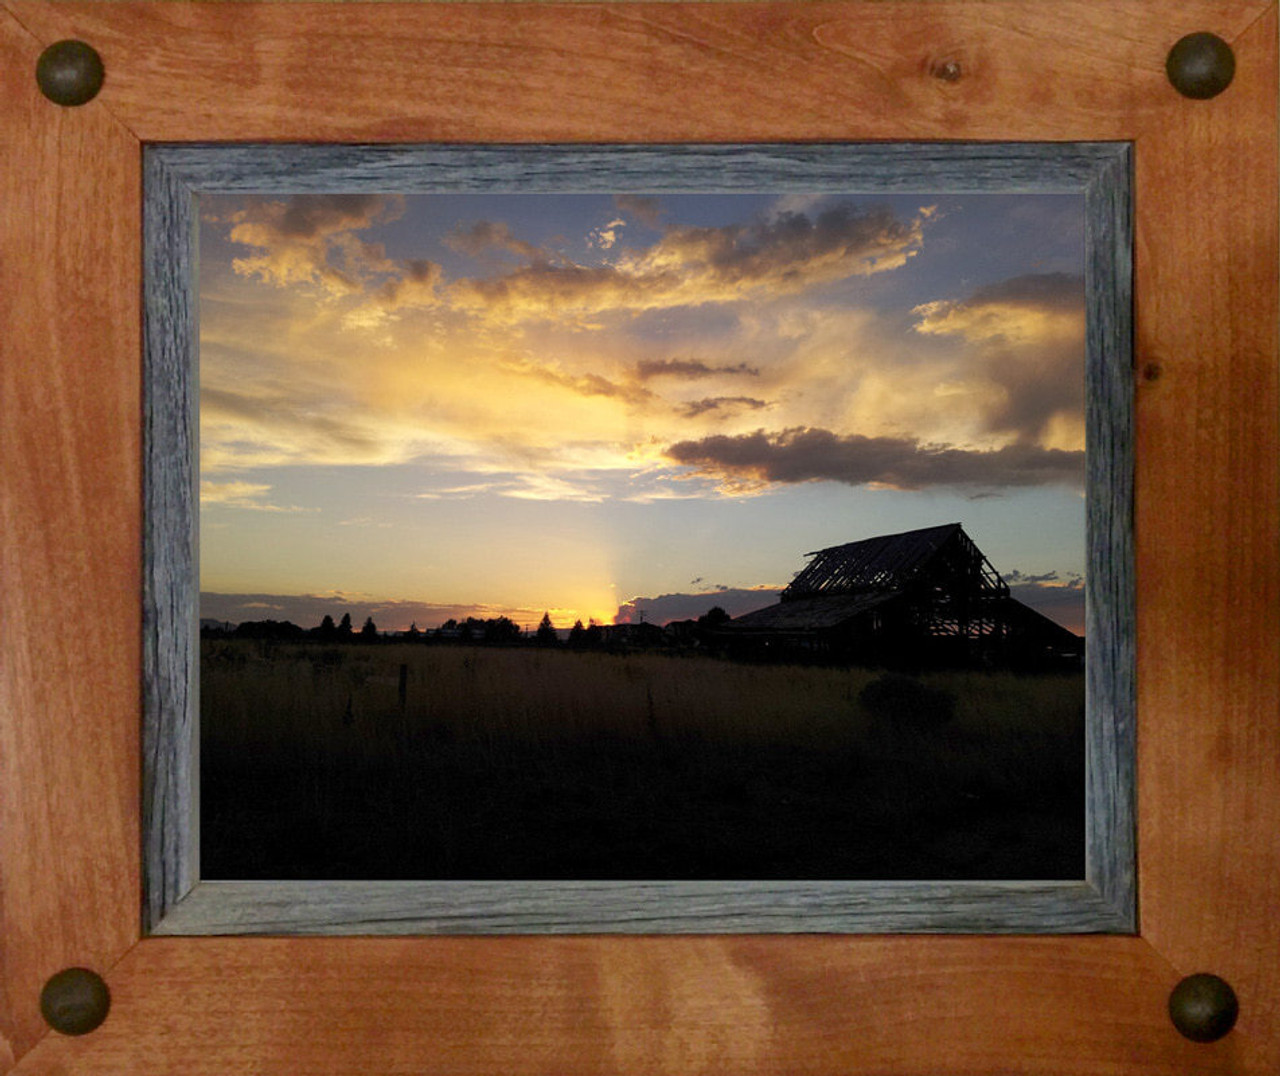 Western Frames | Alder and Barnwood 8x10 Frame with tacks